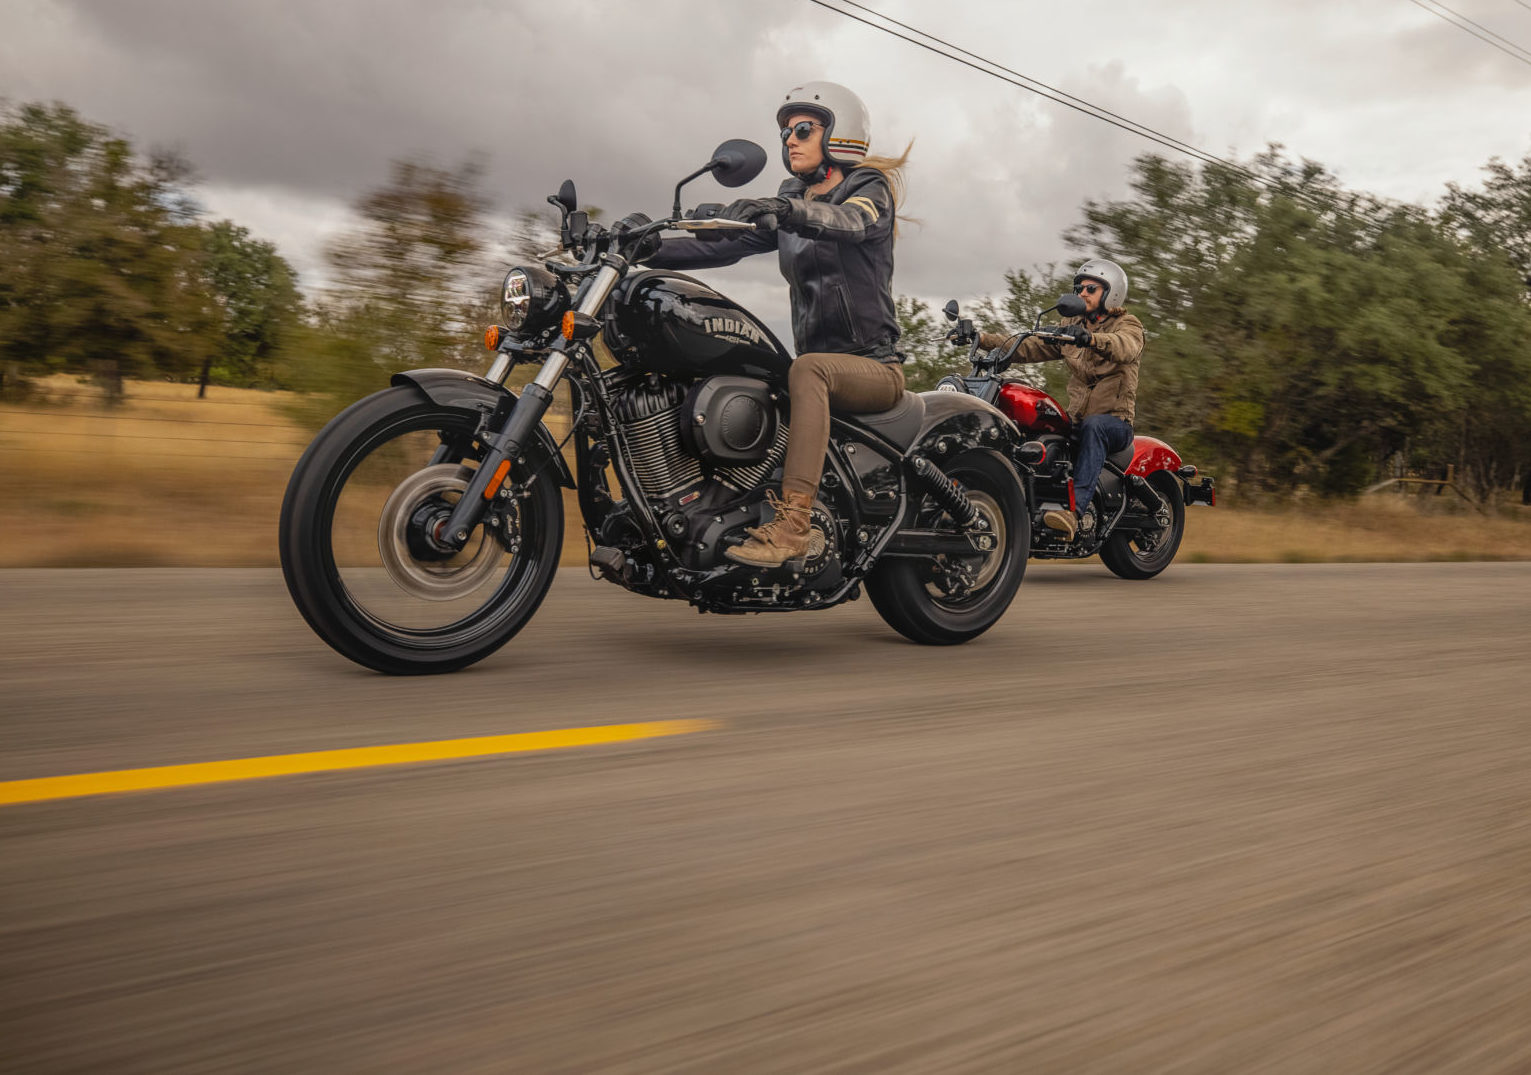 Indian Motorcycle is partnering with International Female Ride Day to empower women to ride. Photo courtesy Indian Motorcycle.